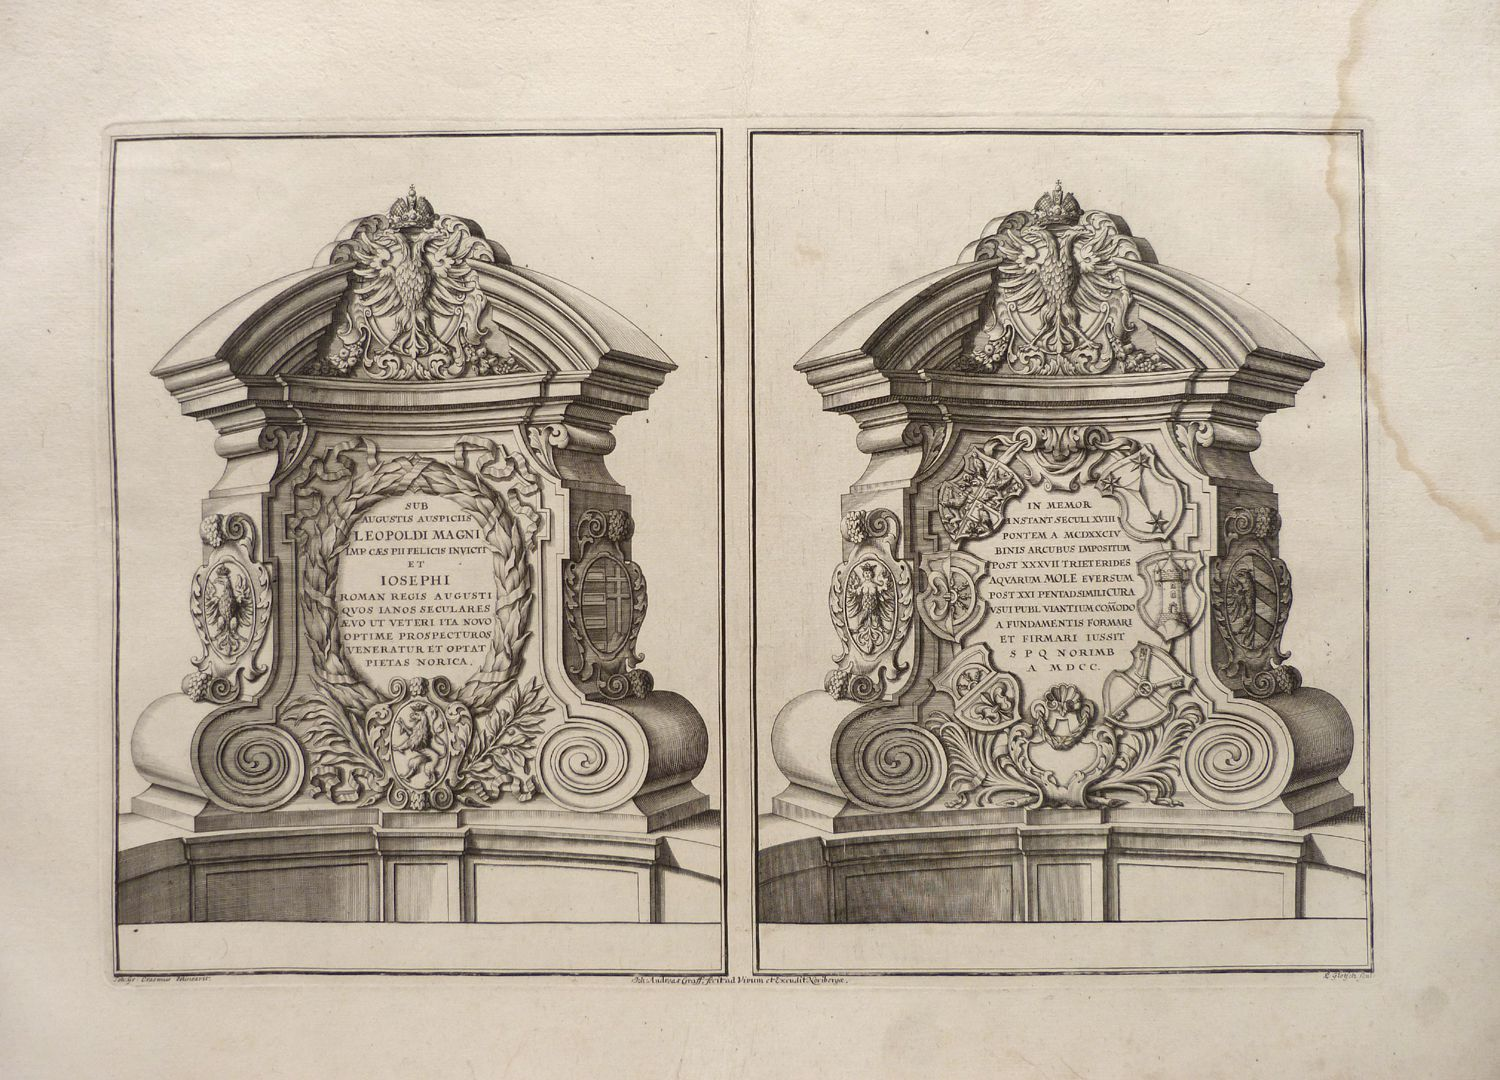 Pulpits of the Museum Bridge with inscriptions